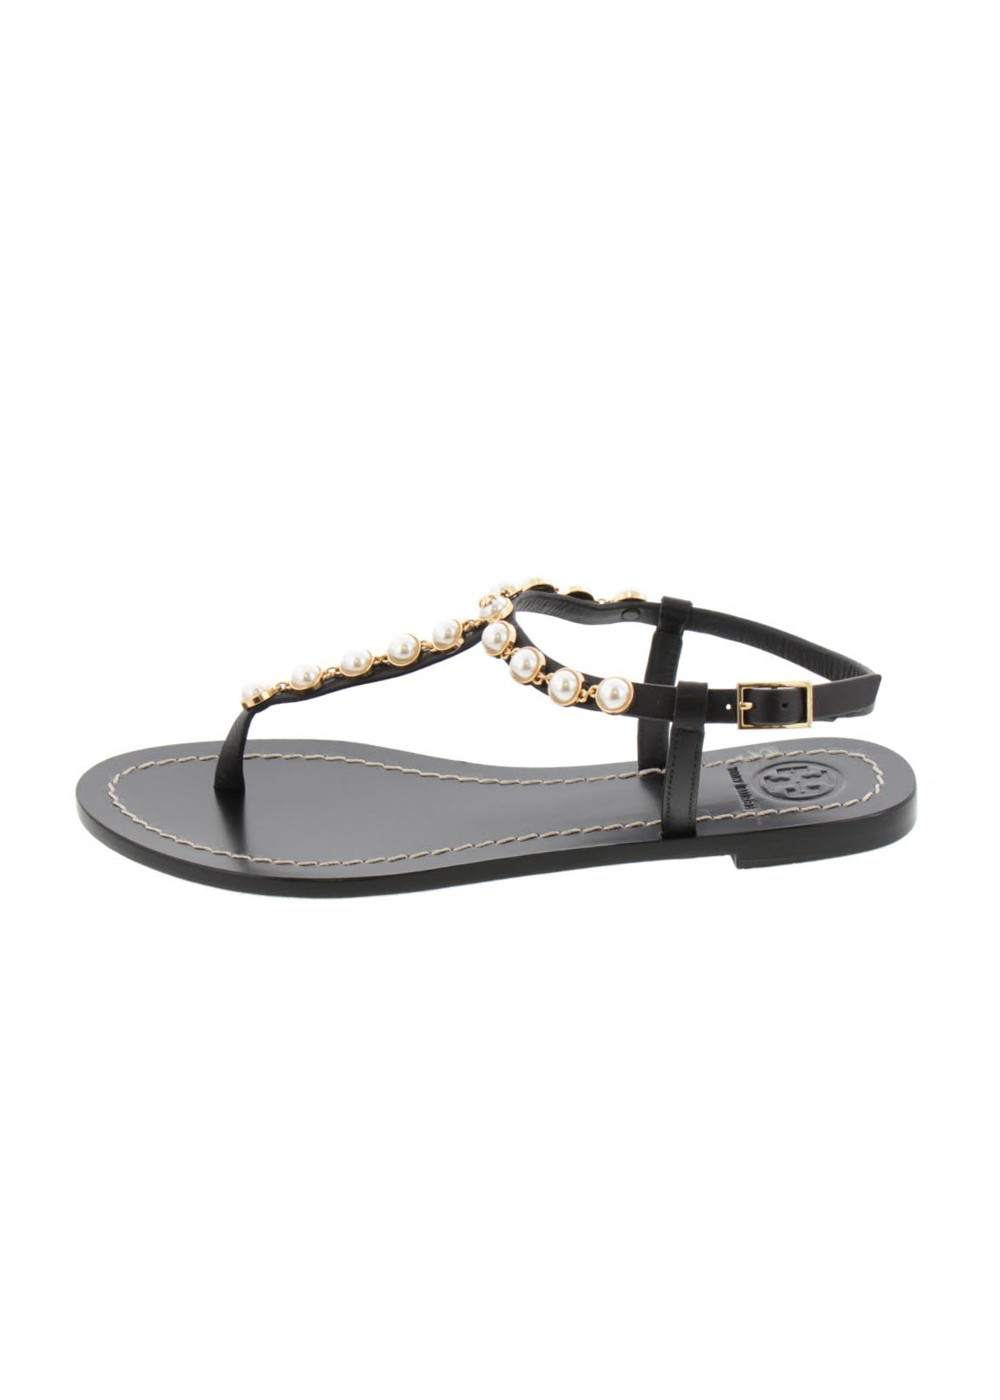 【最大48%OFF】EMMY PEARL SANDAL|PERFECT BLACK|サンダル|Tory Burch